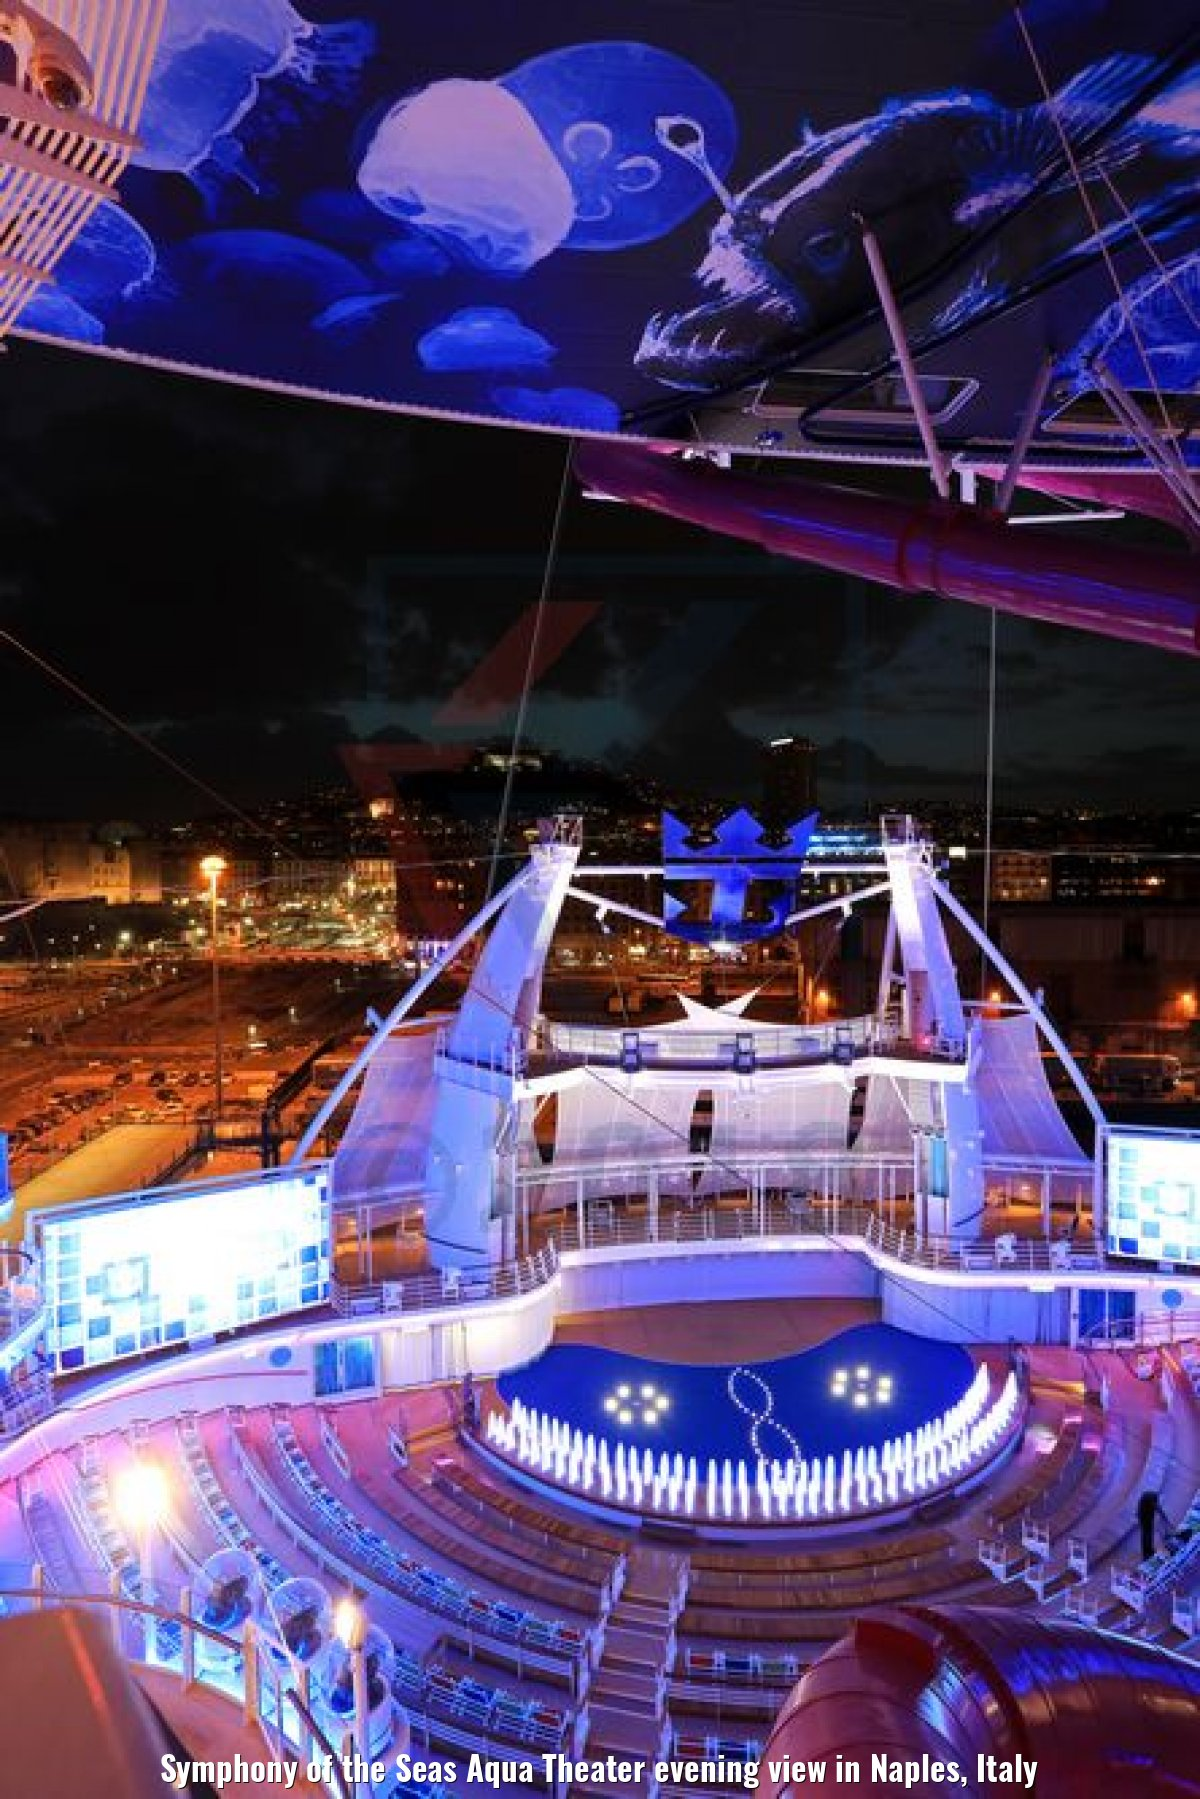 Symphony of the Seas Aqua Theater evening view in Naples, Italy